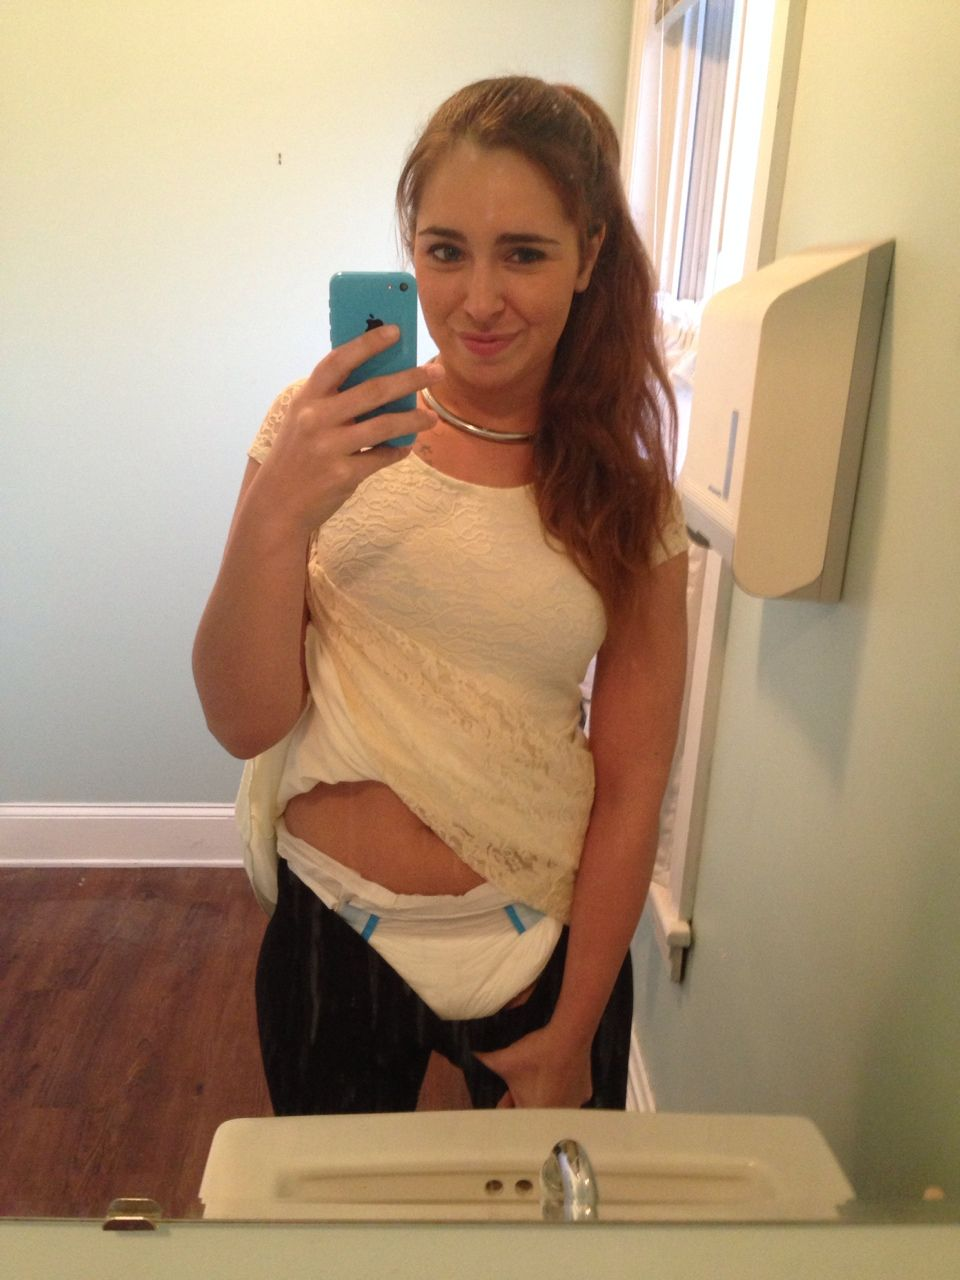 hot girls in diapers tumblr